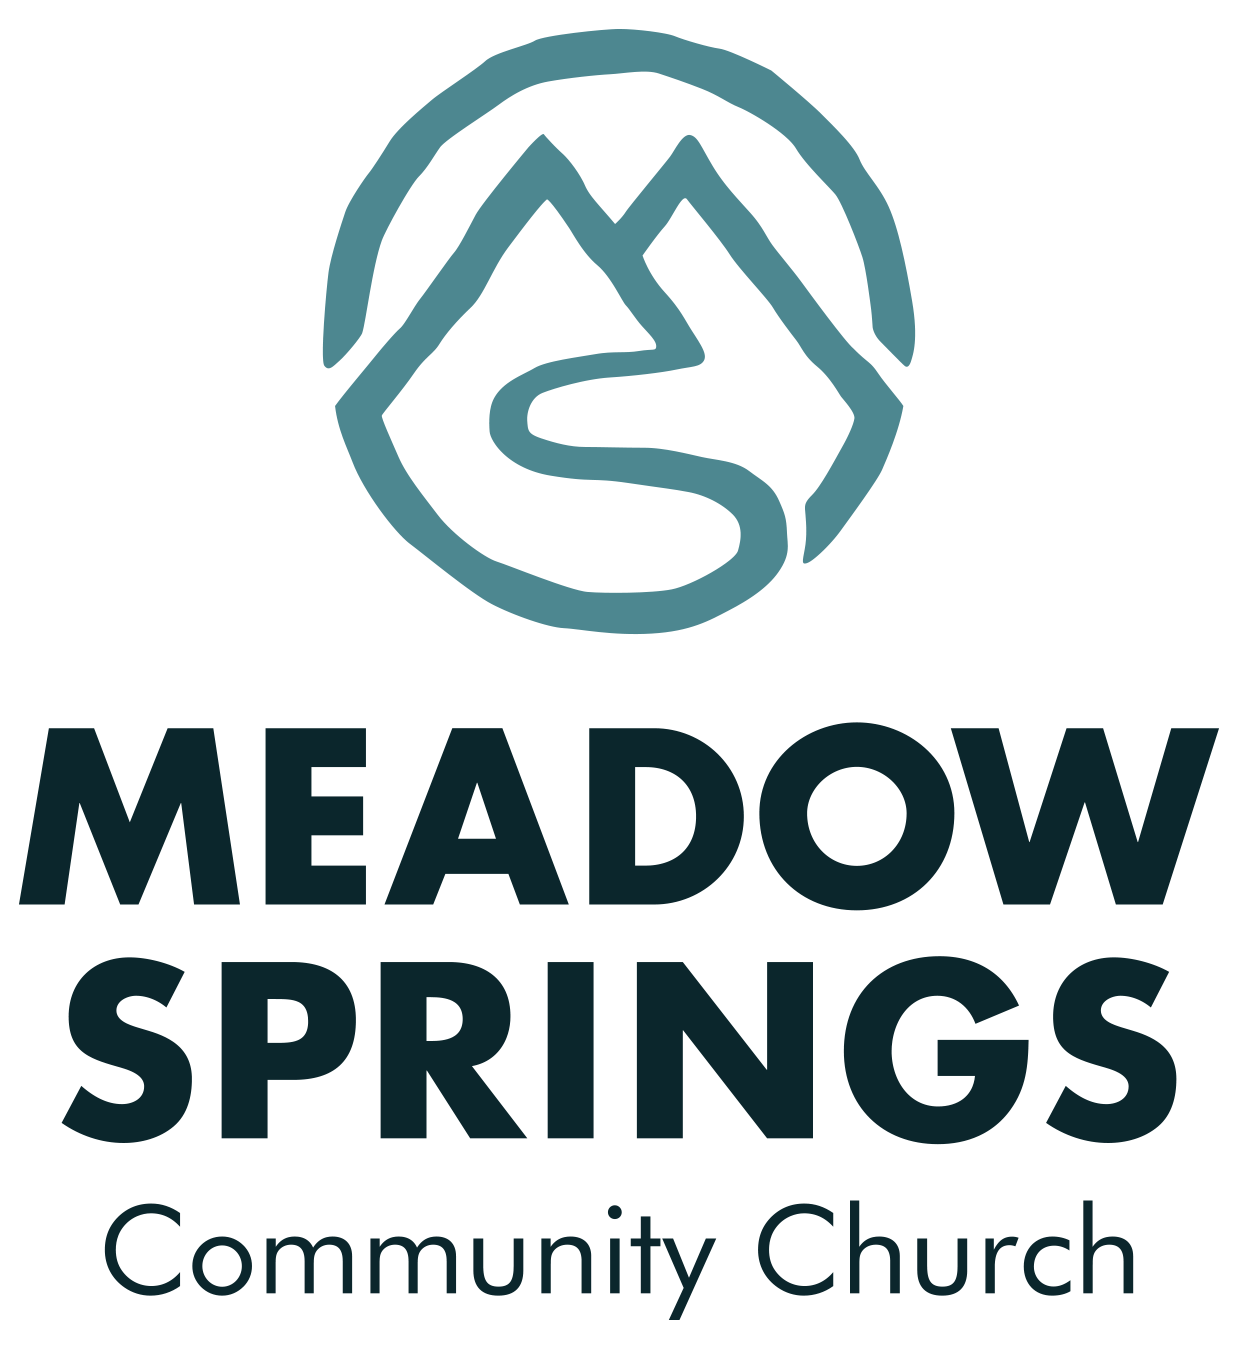 MEADOW SPRINGS COMMUNITY CHURCH